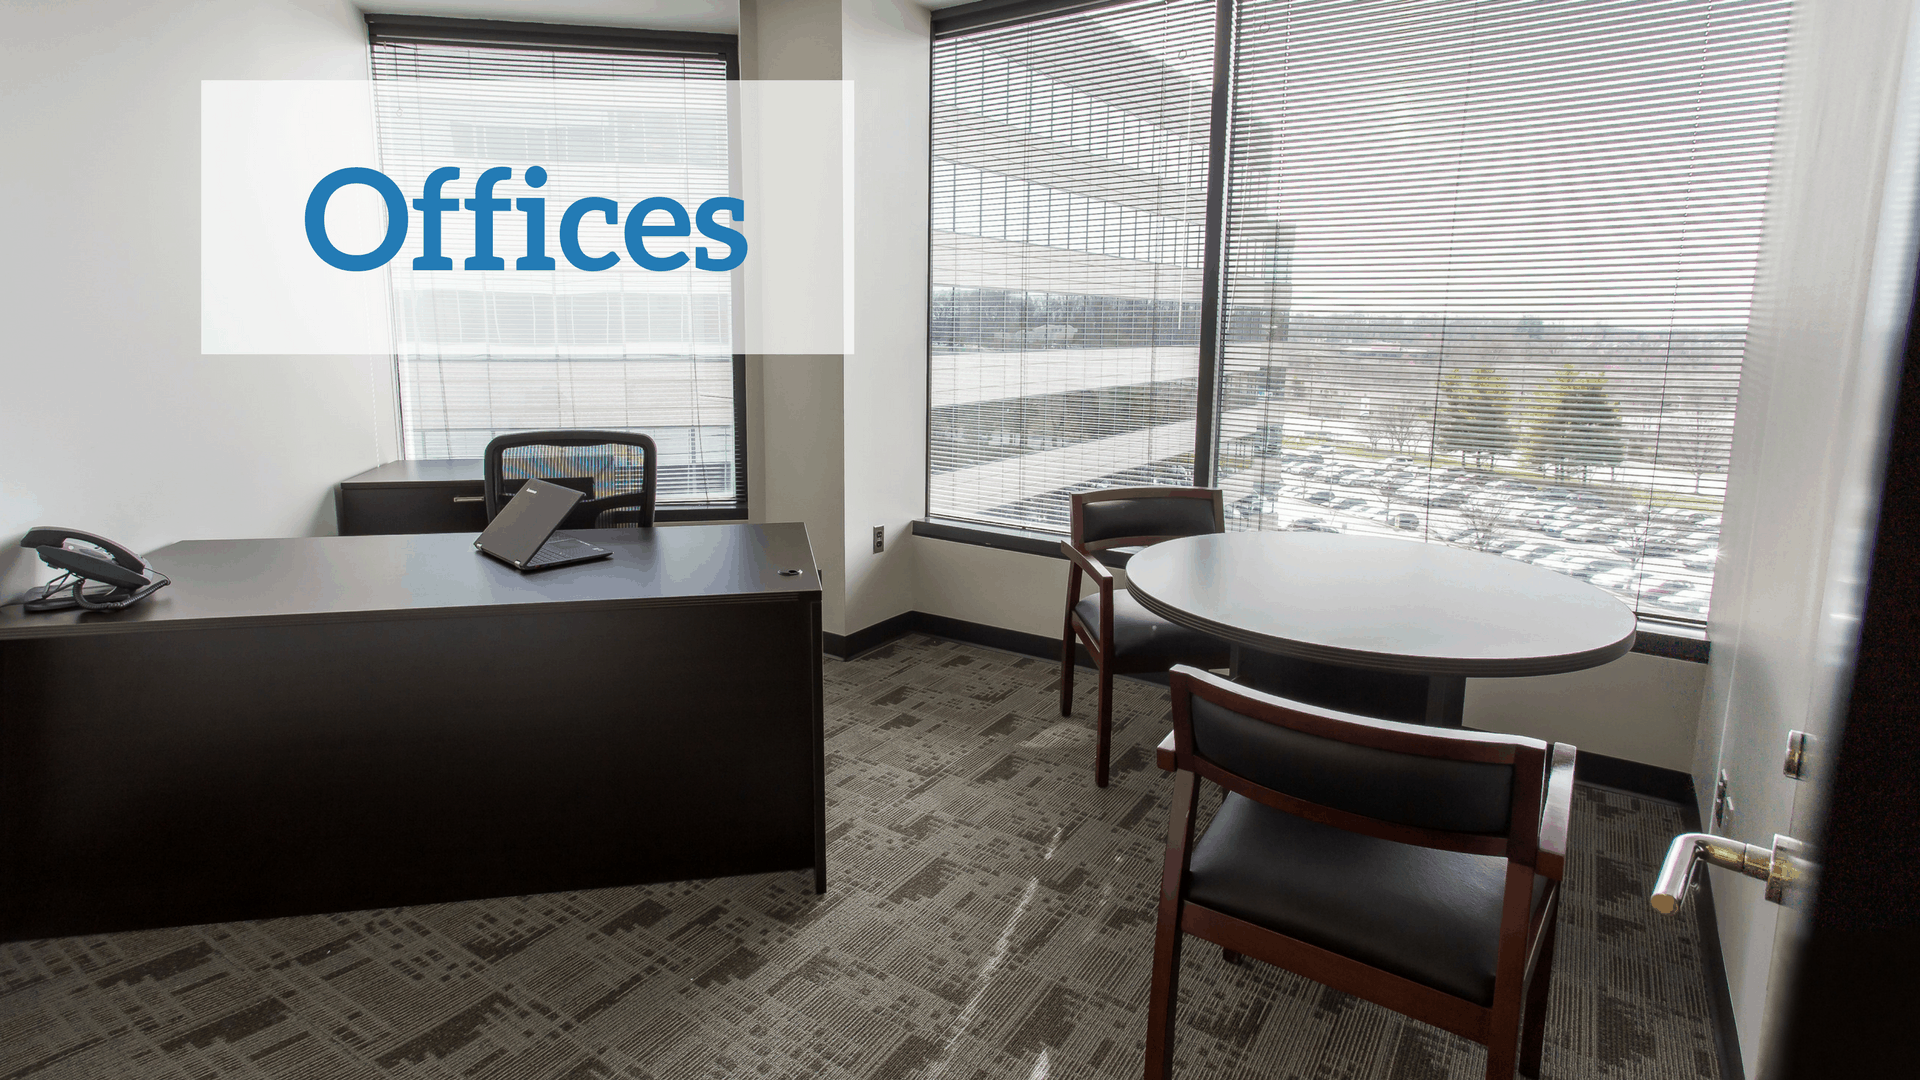 Business Office Satellite Office Solutions With The Flexibility To Meet